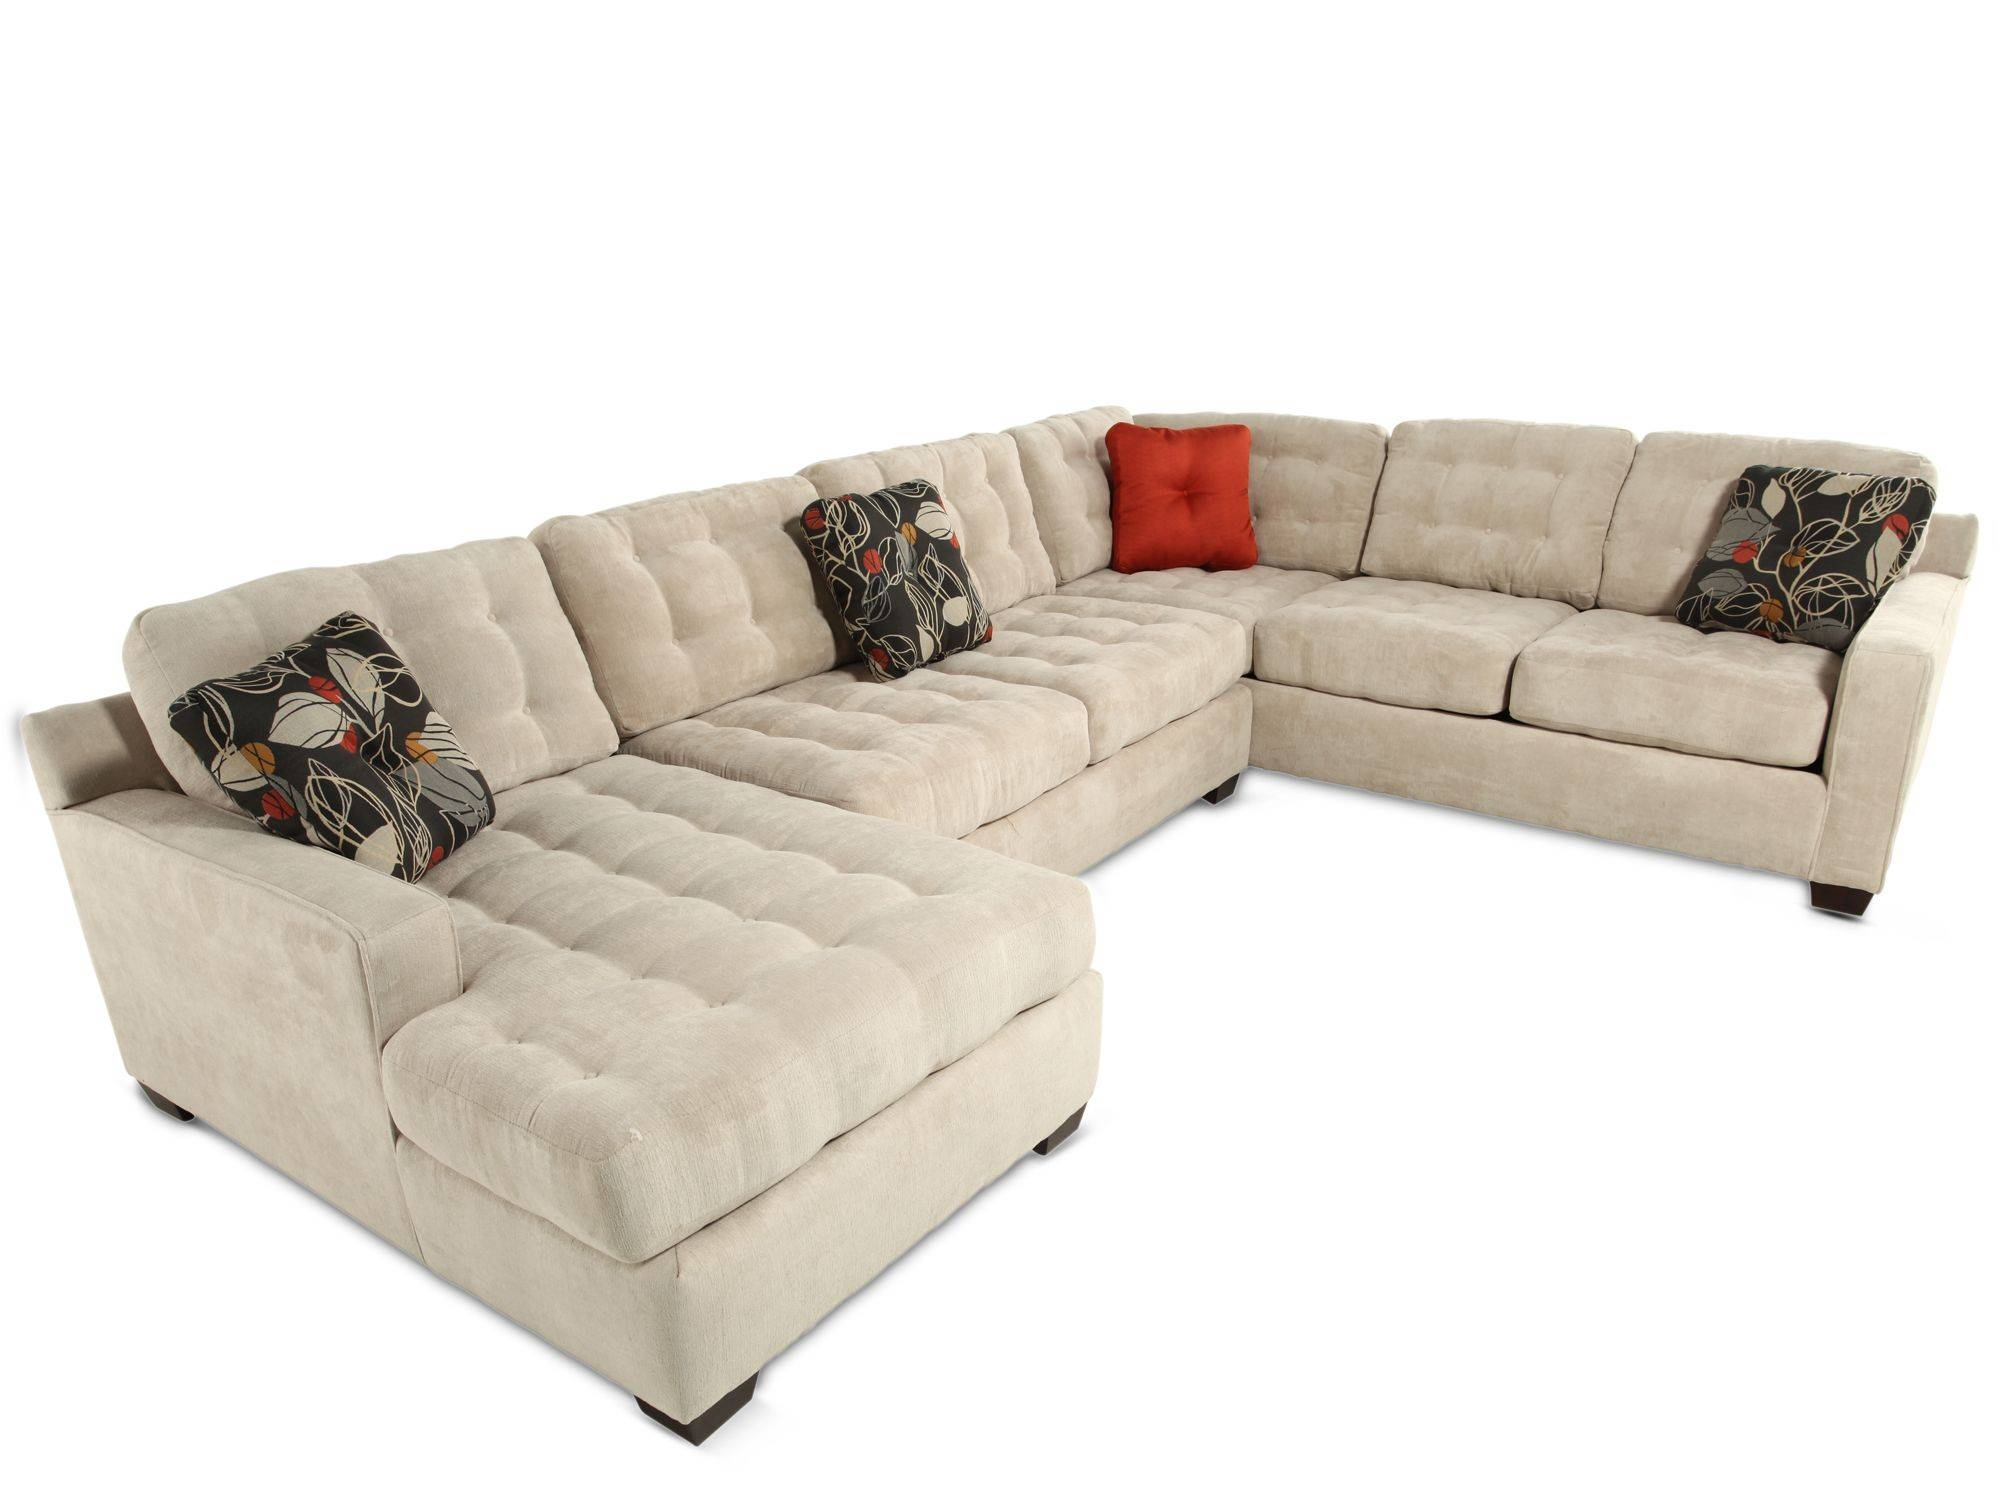 Sofas Center : Deep Seated Sectional Sofas Austin Texas Area Sofa for Austin Sectional Sofa (Image 21 of 30)